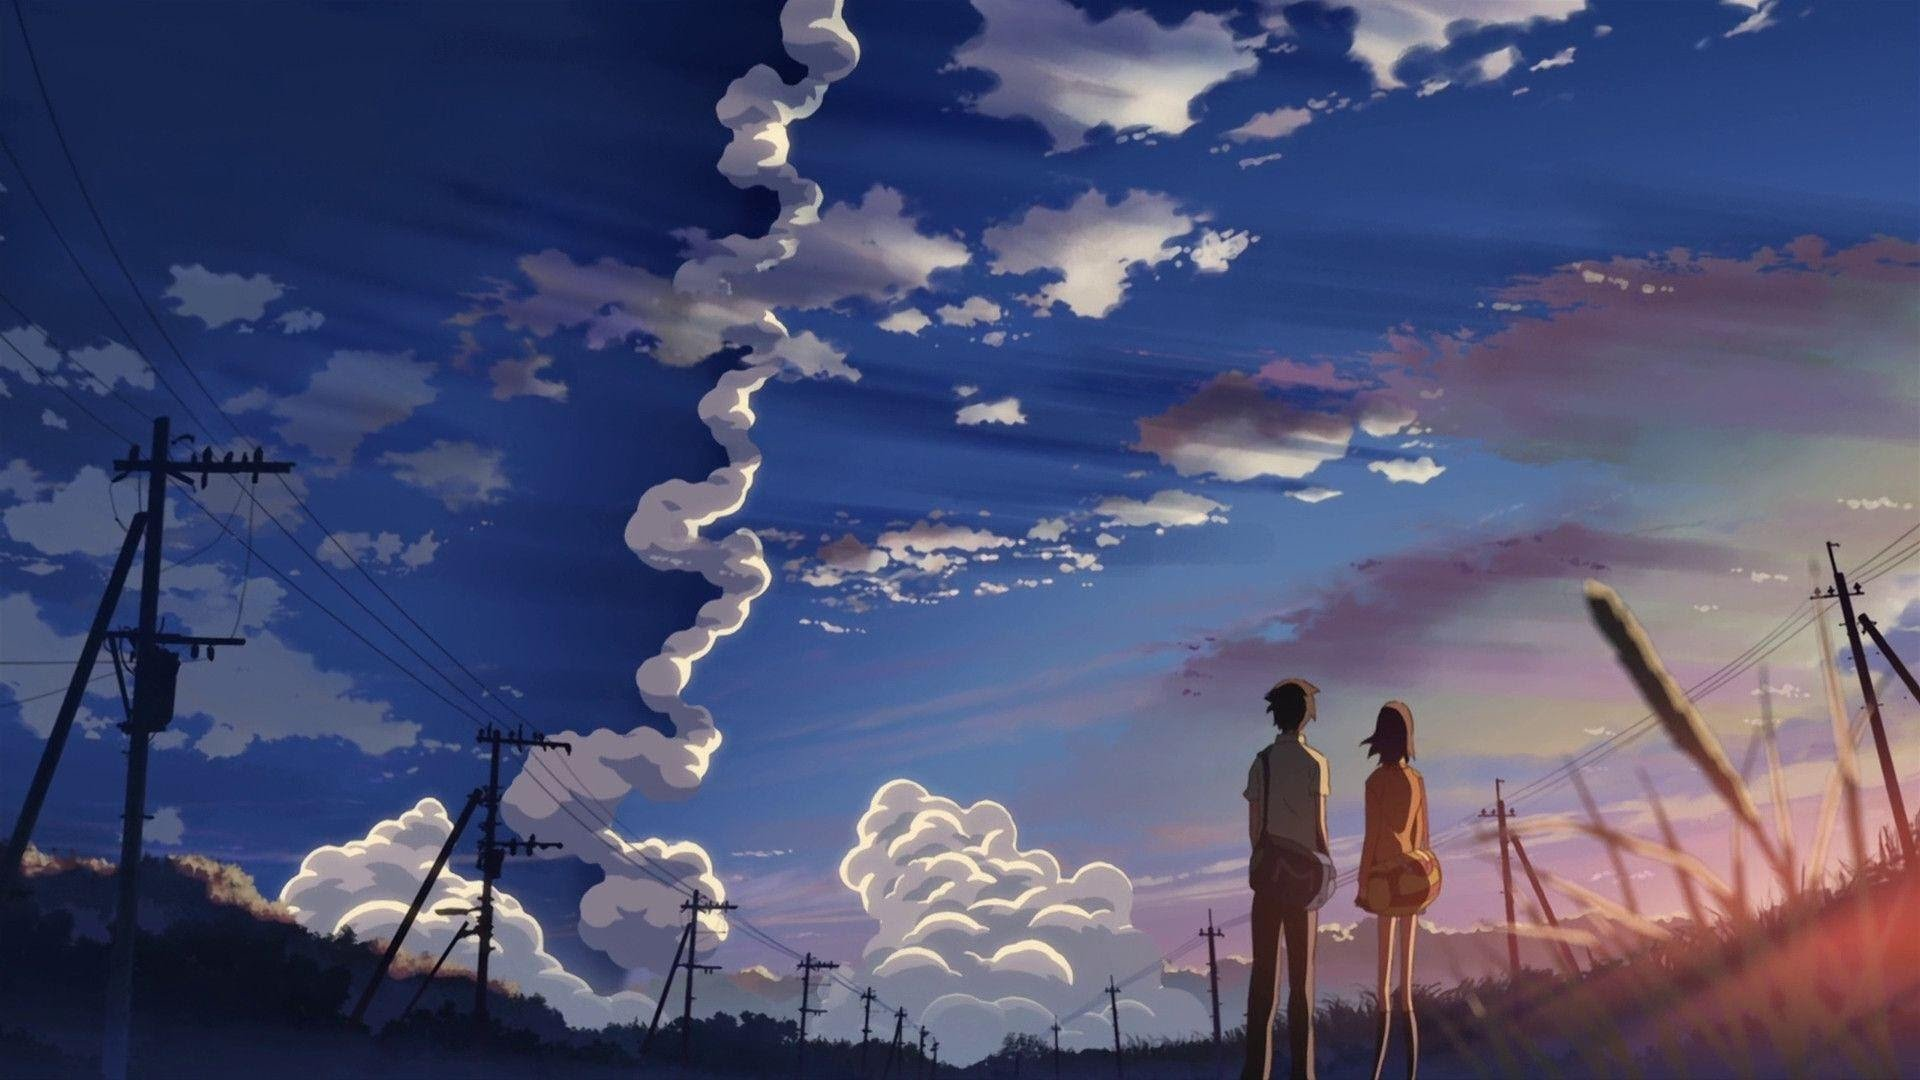 Makoto Shinkais 5 Centimeters Per Second Is Coming To Blu Ray Starting 29th October 2018 For Srp 15 99 It Will Be Released As A Standard Blu Ray Set In